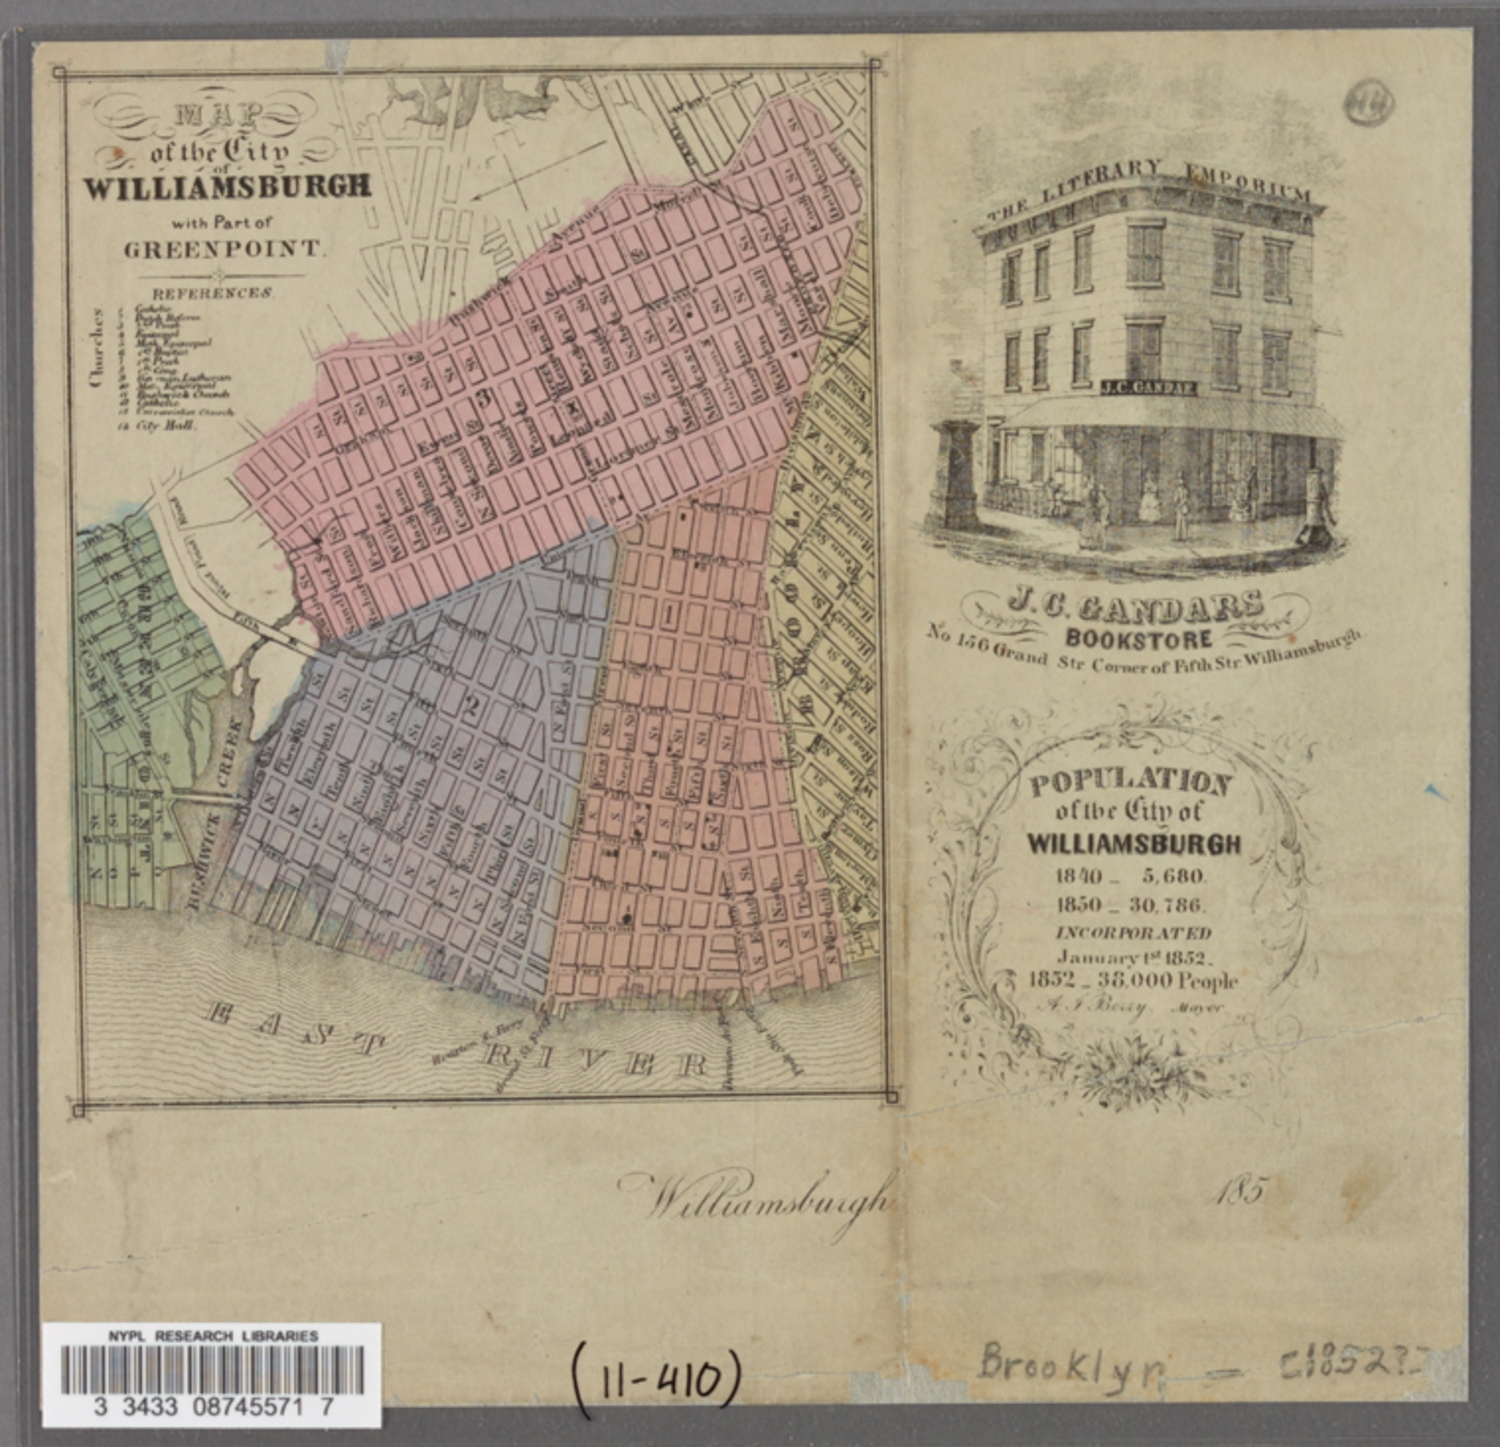 Map of the City of Williamsburg with part of Greenpoint (1852)